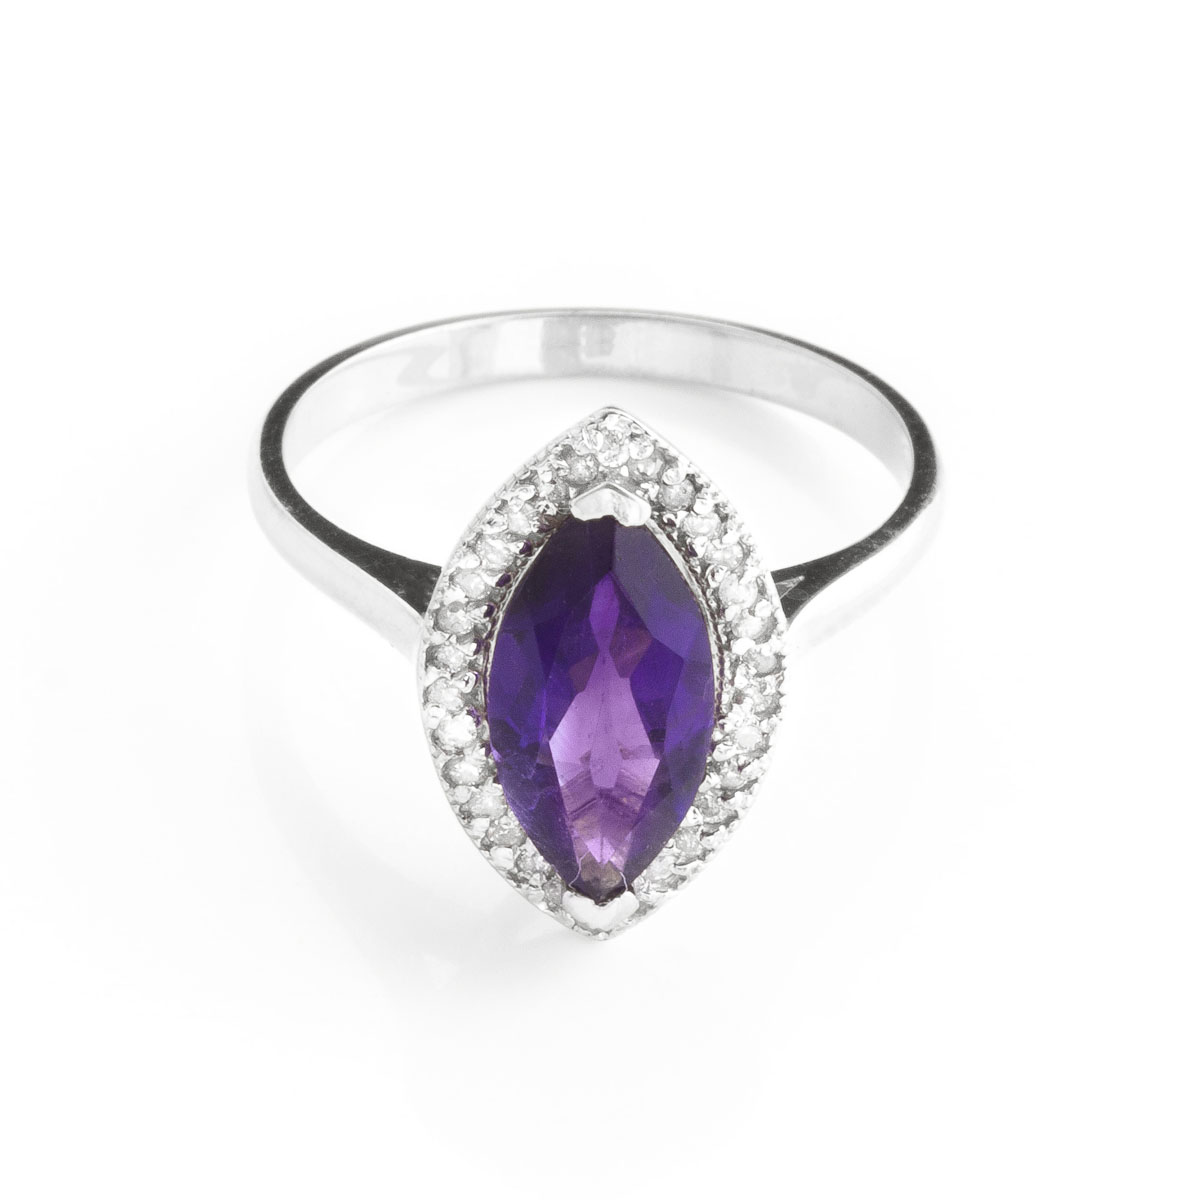 Amethyst Halo Ring 1.8 ctw in 9ct White Gold